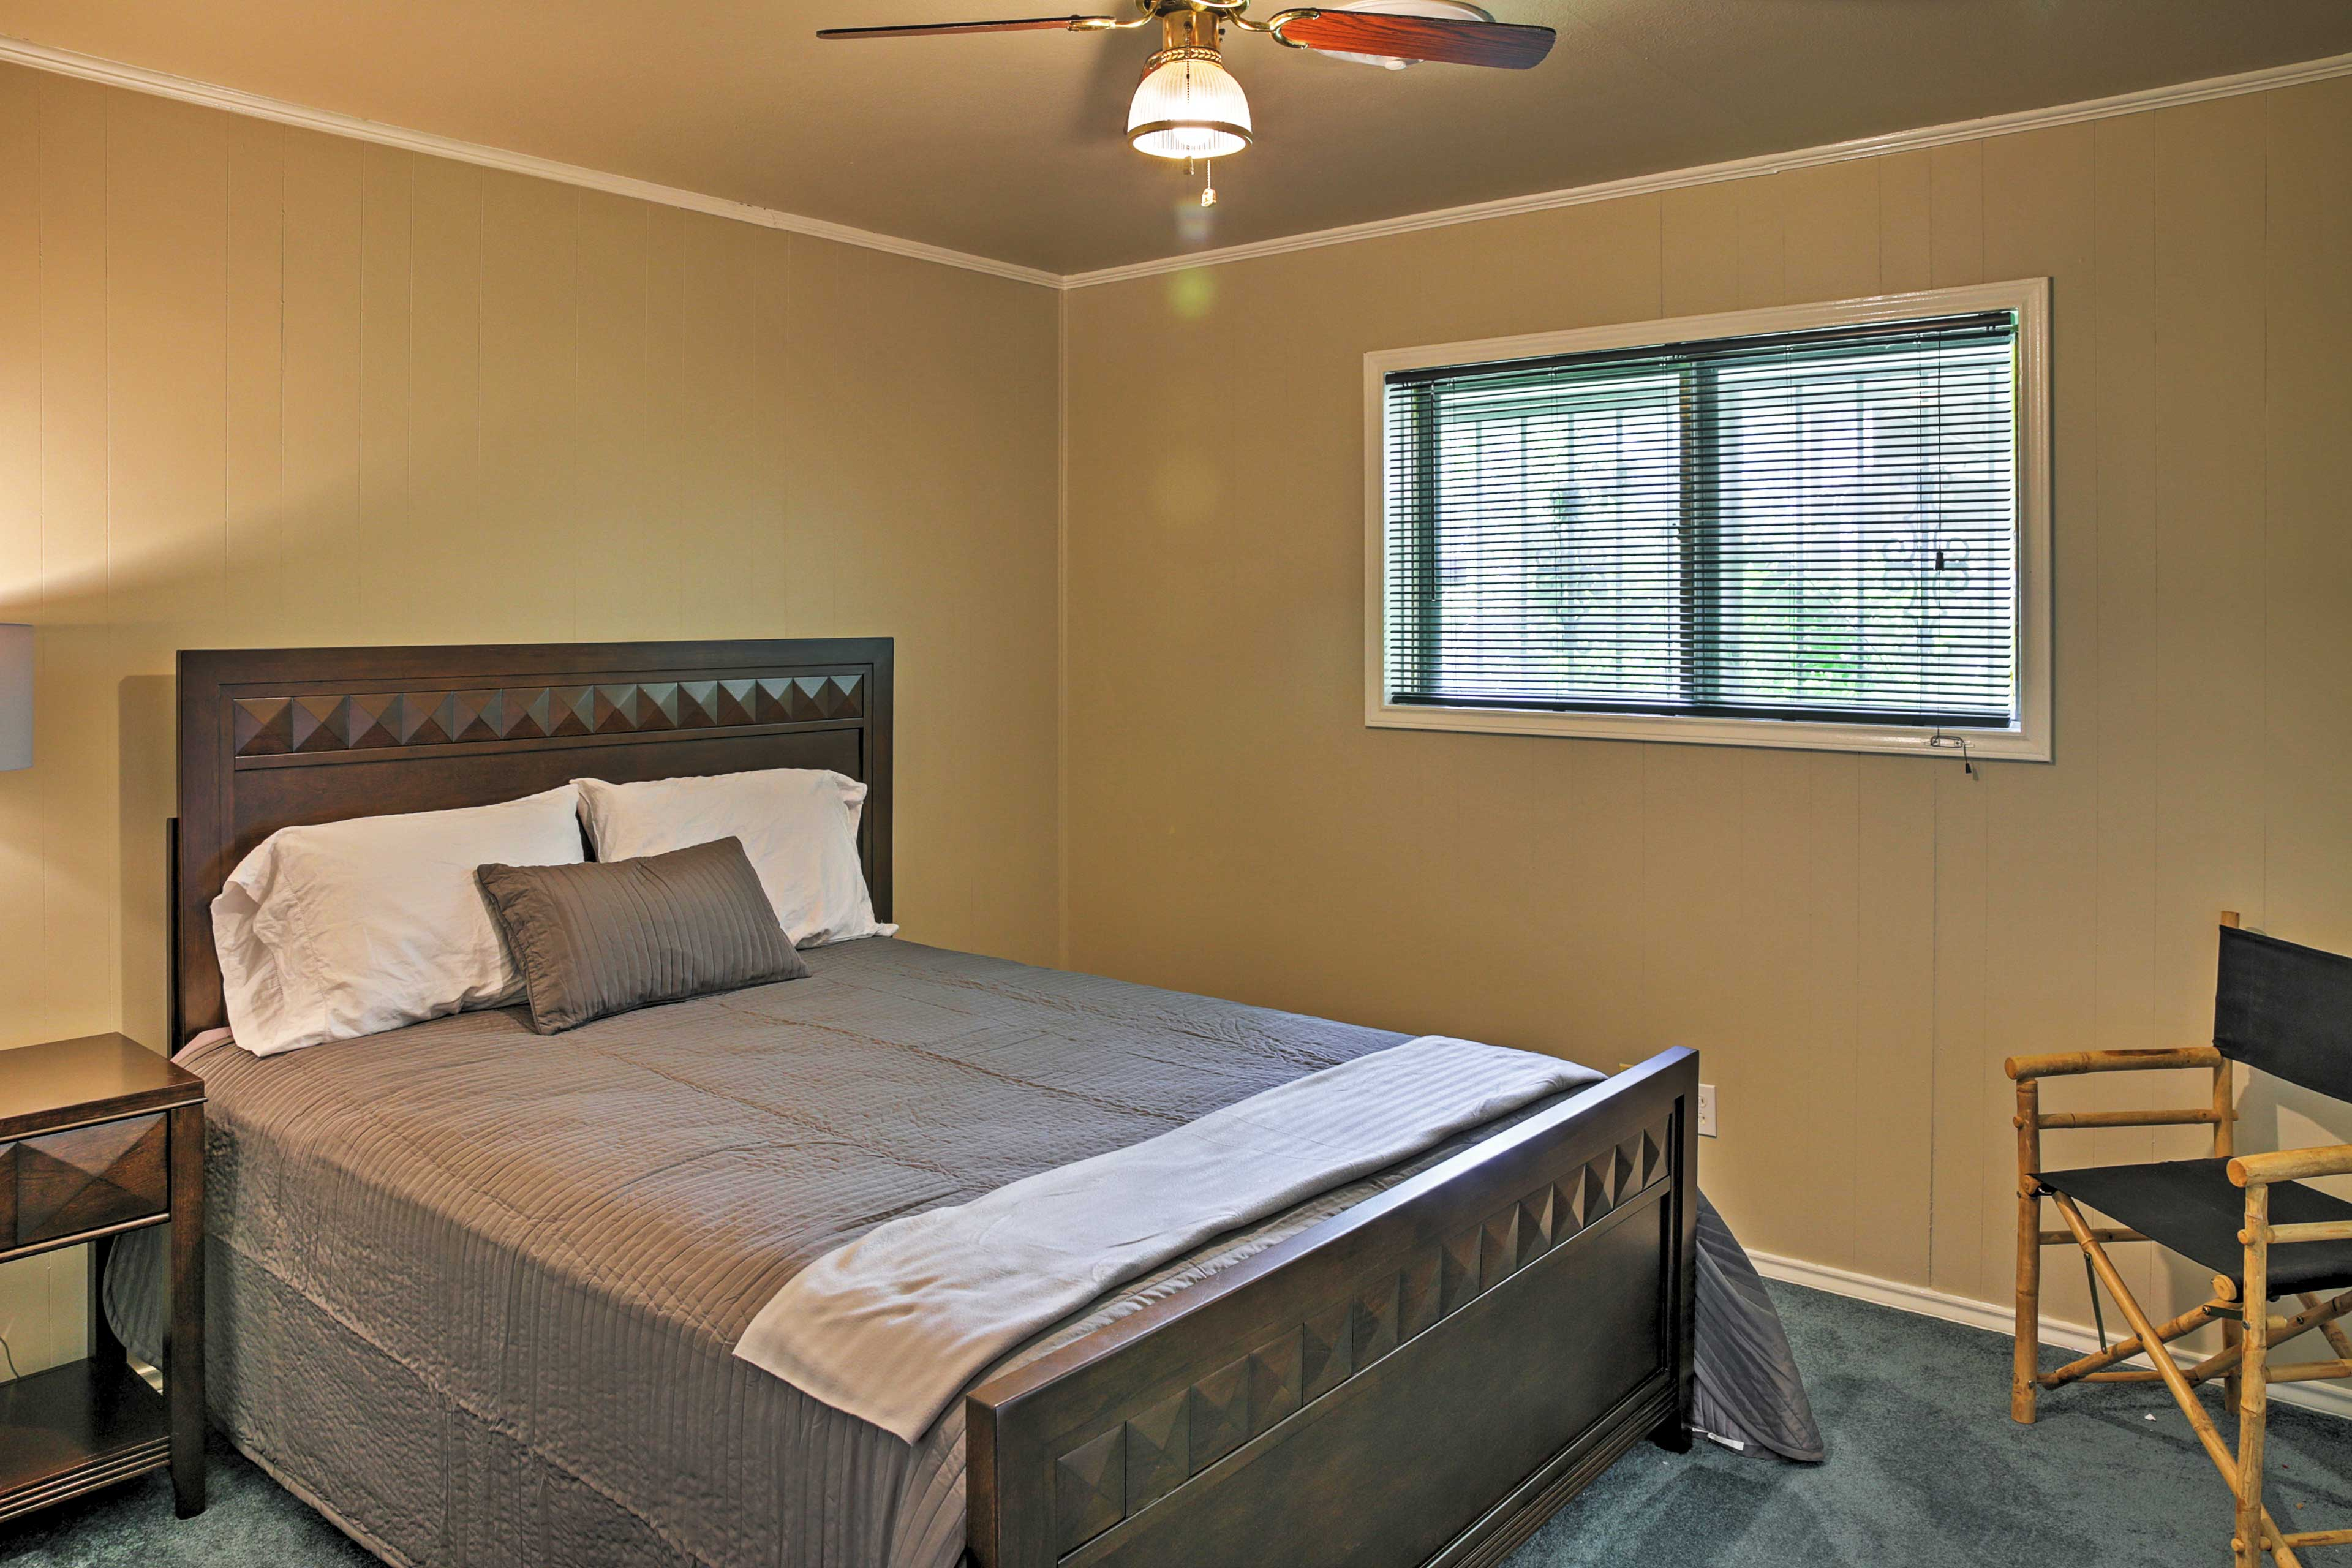 Look forward to great nights of sleep in this cozy bed.